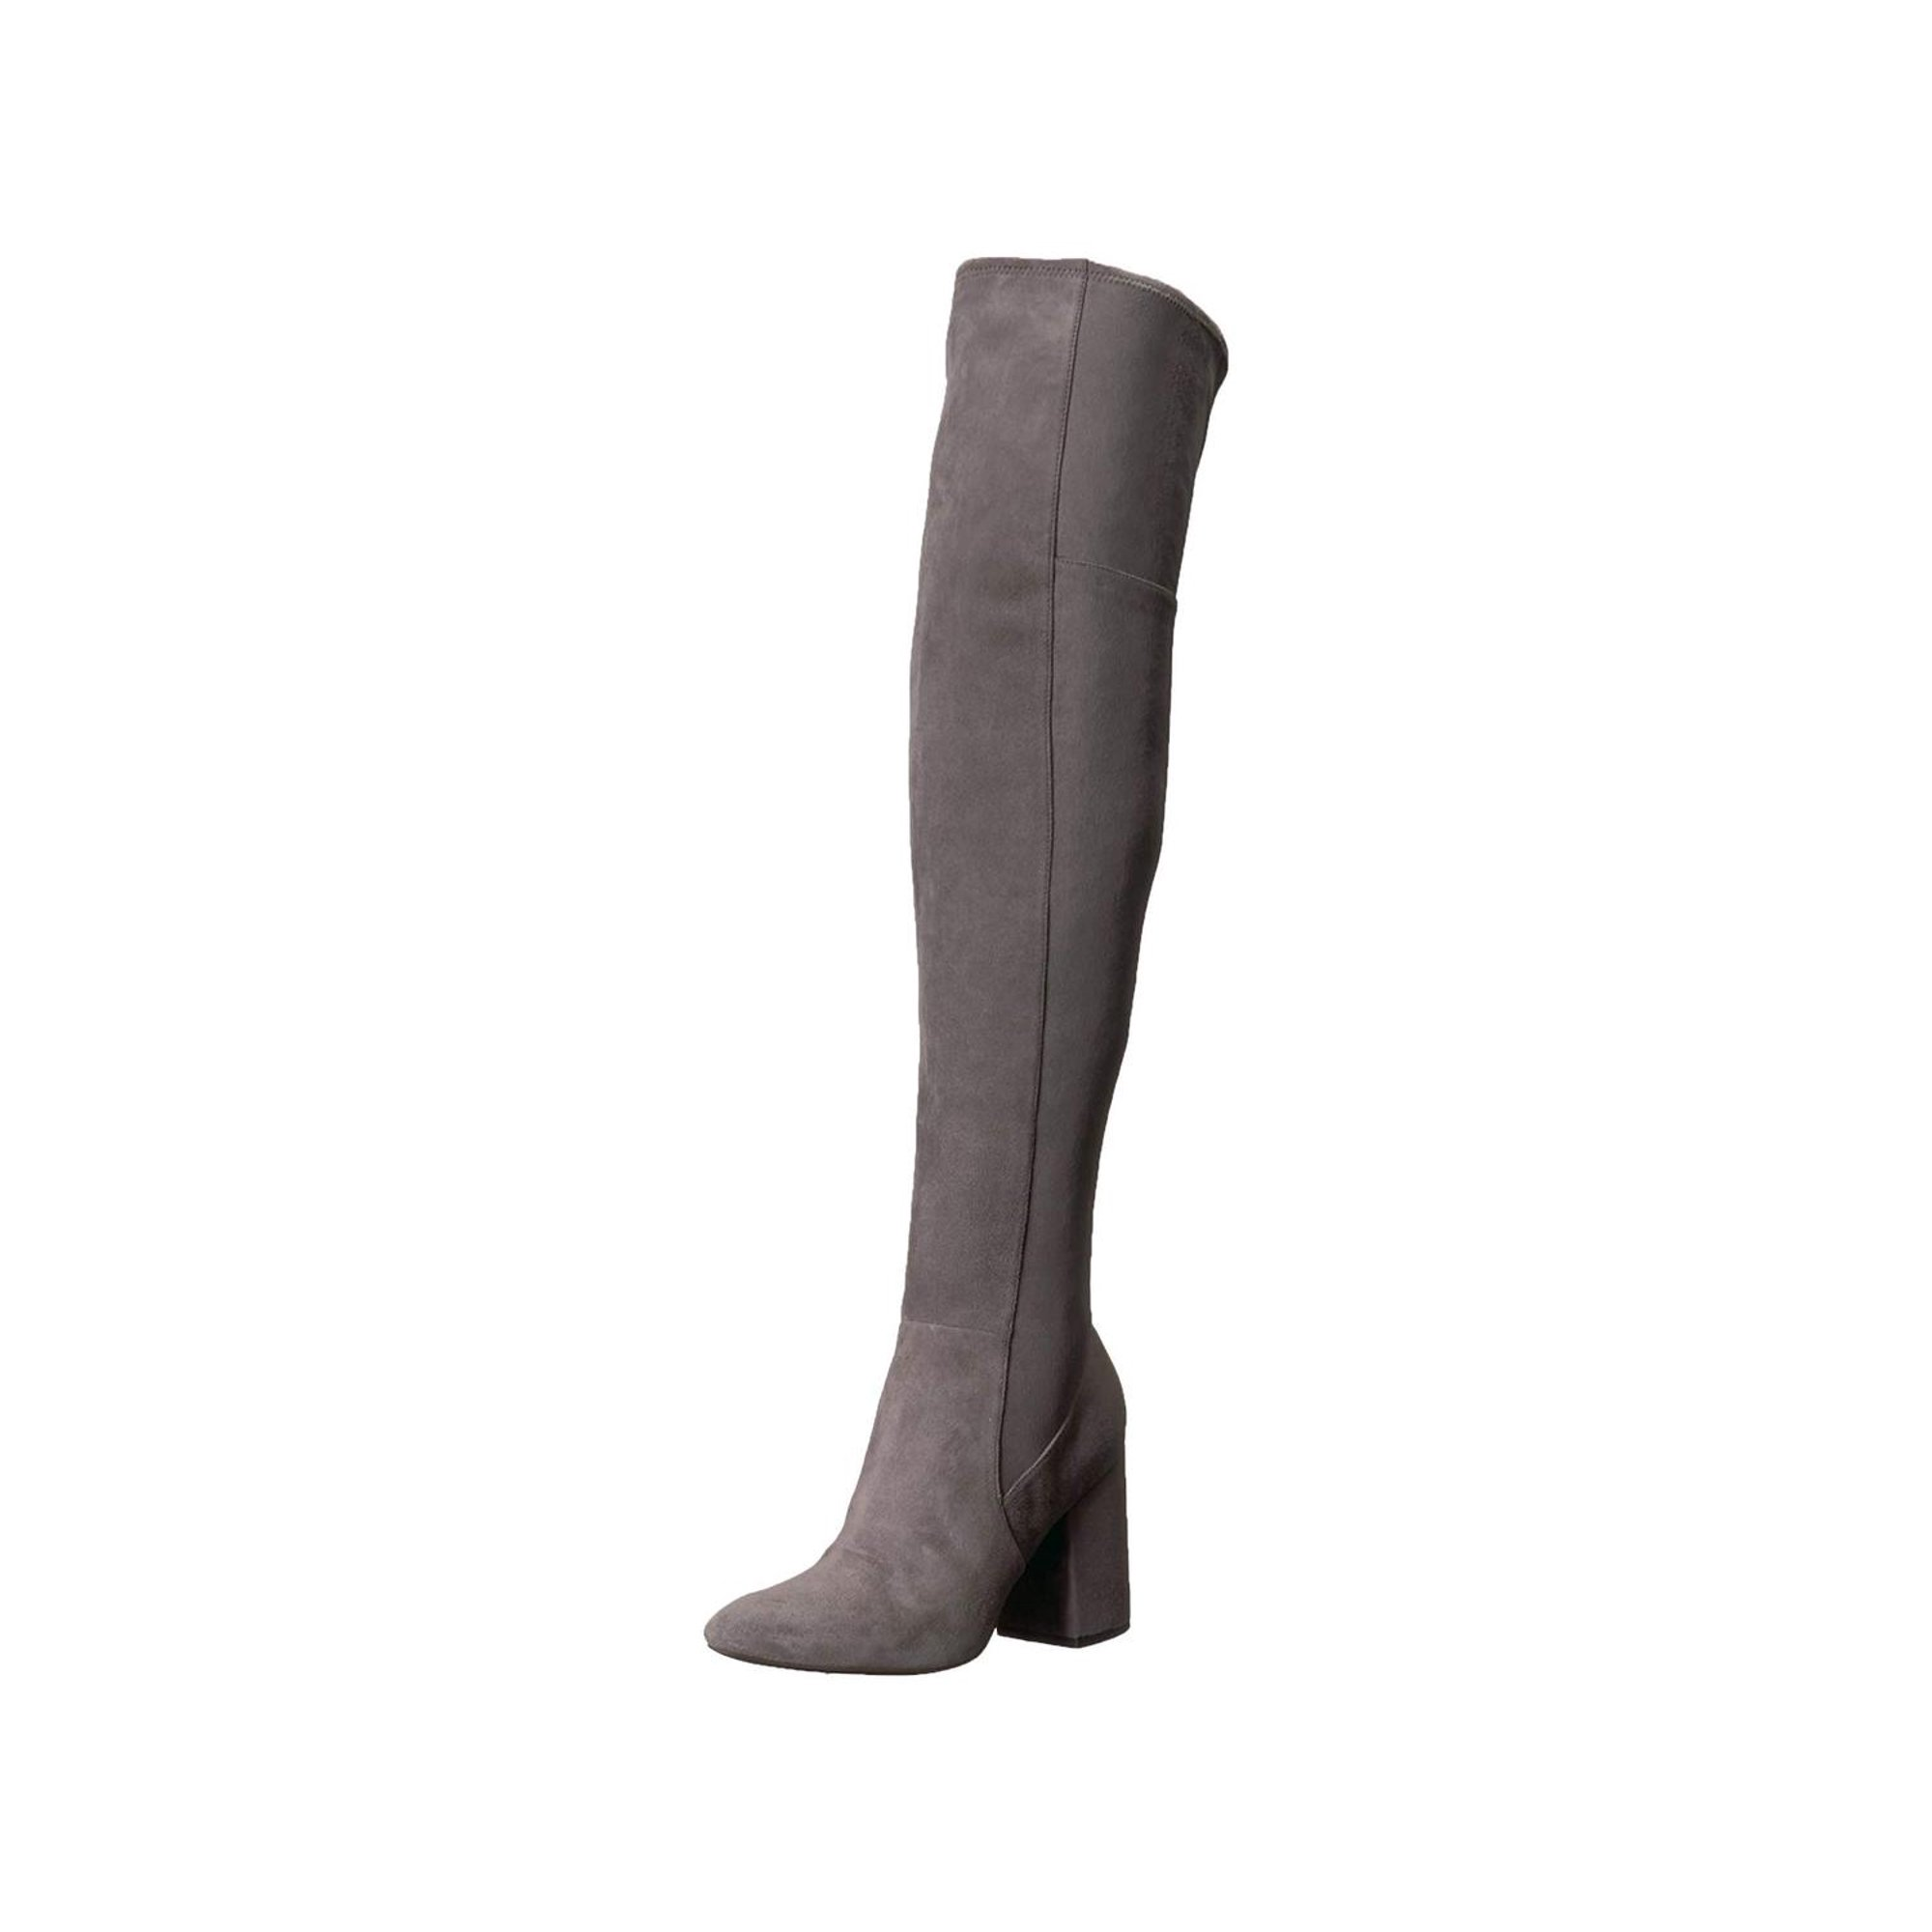 14e5c67dde7 Cole Haan Womens Darla OTK Boot Almond Toe Over Knee